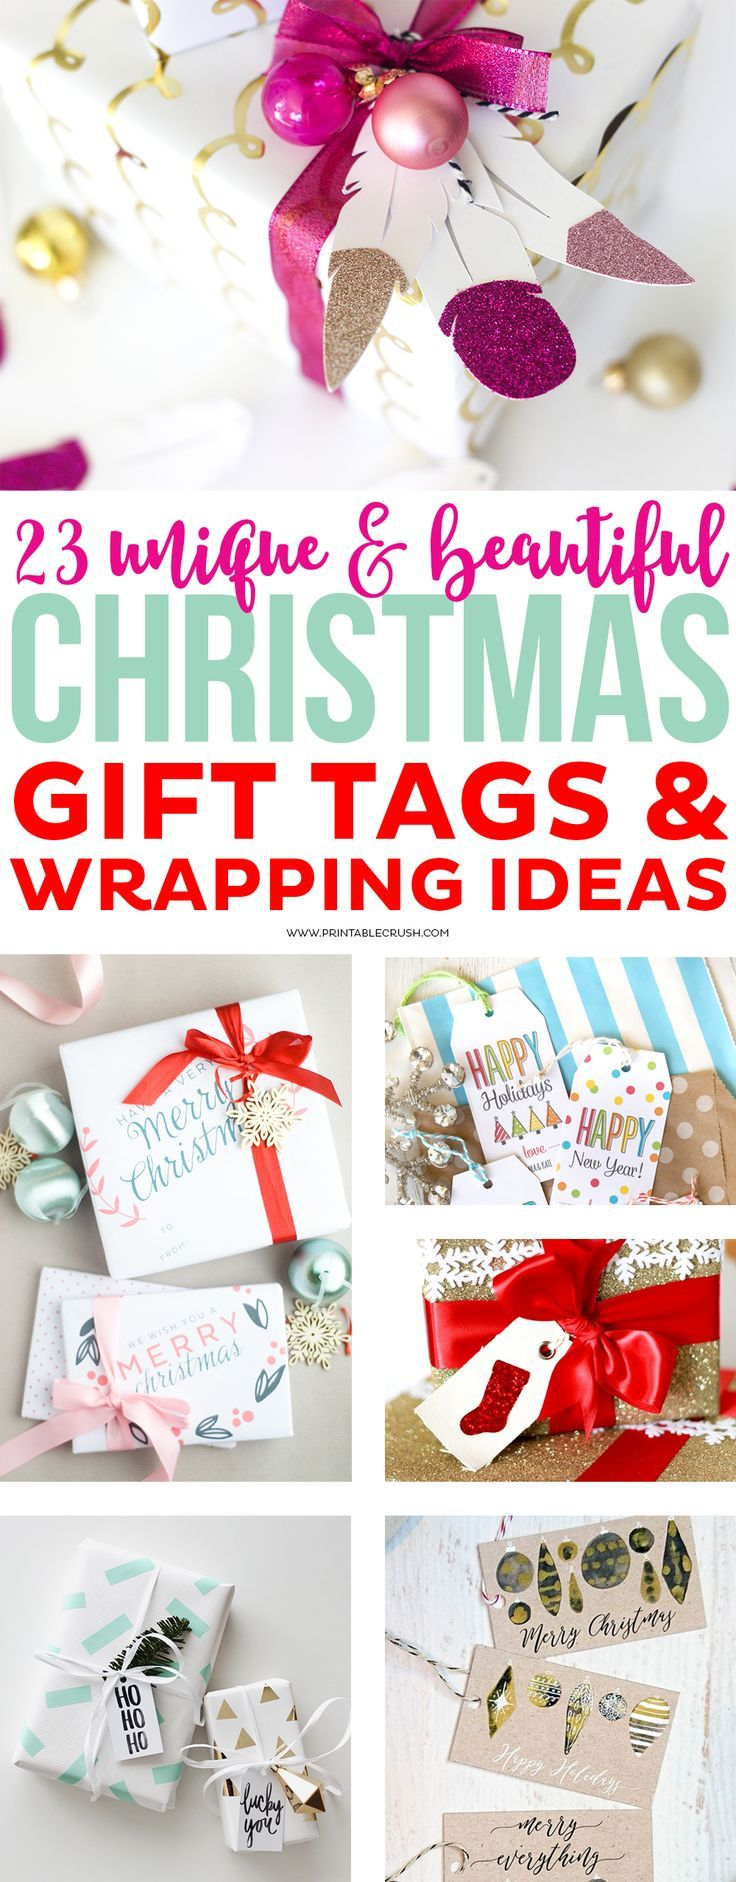 23 Unique Christmas Gift Tags and Wrapping Ideas | Pinterest ...